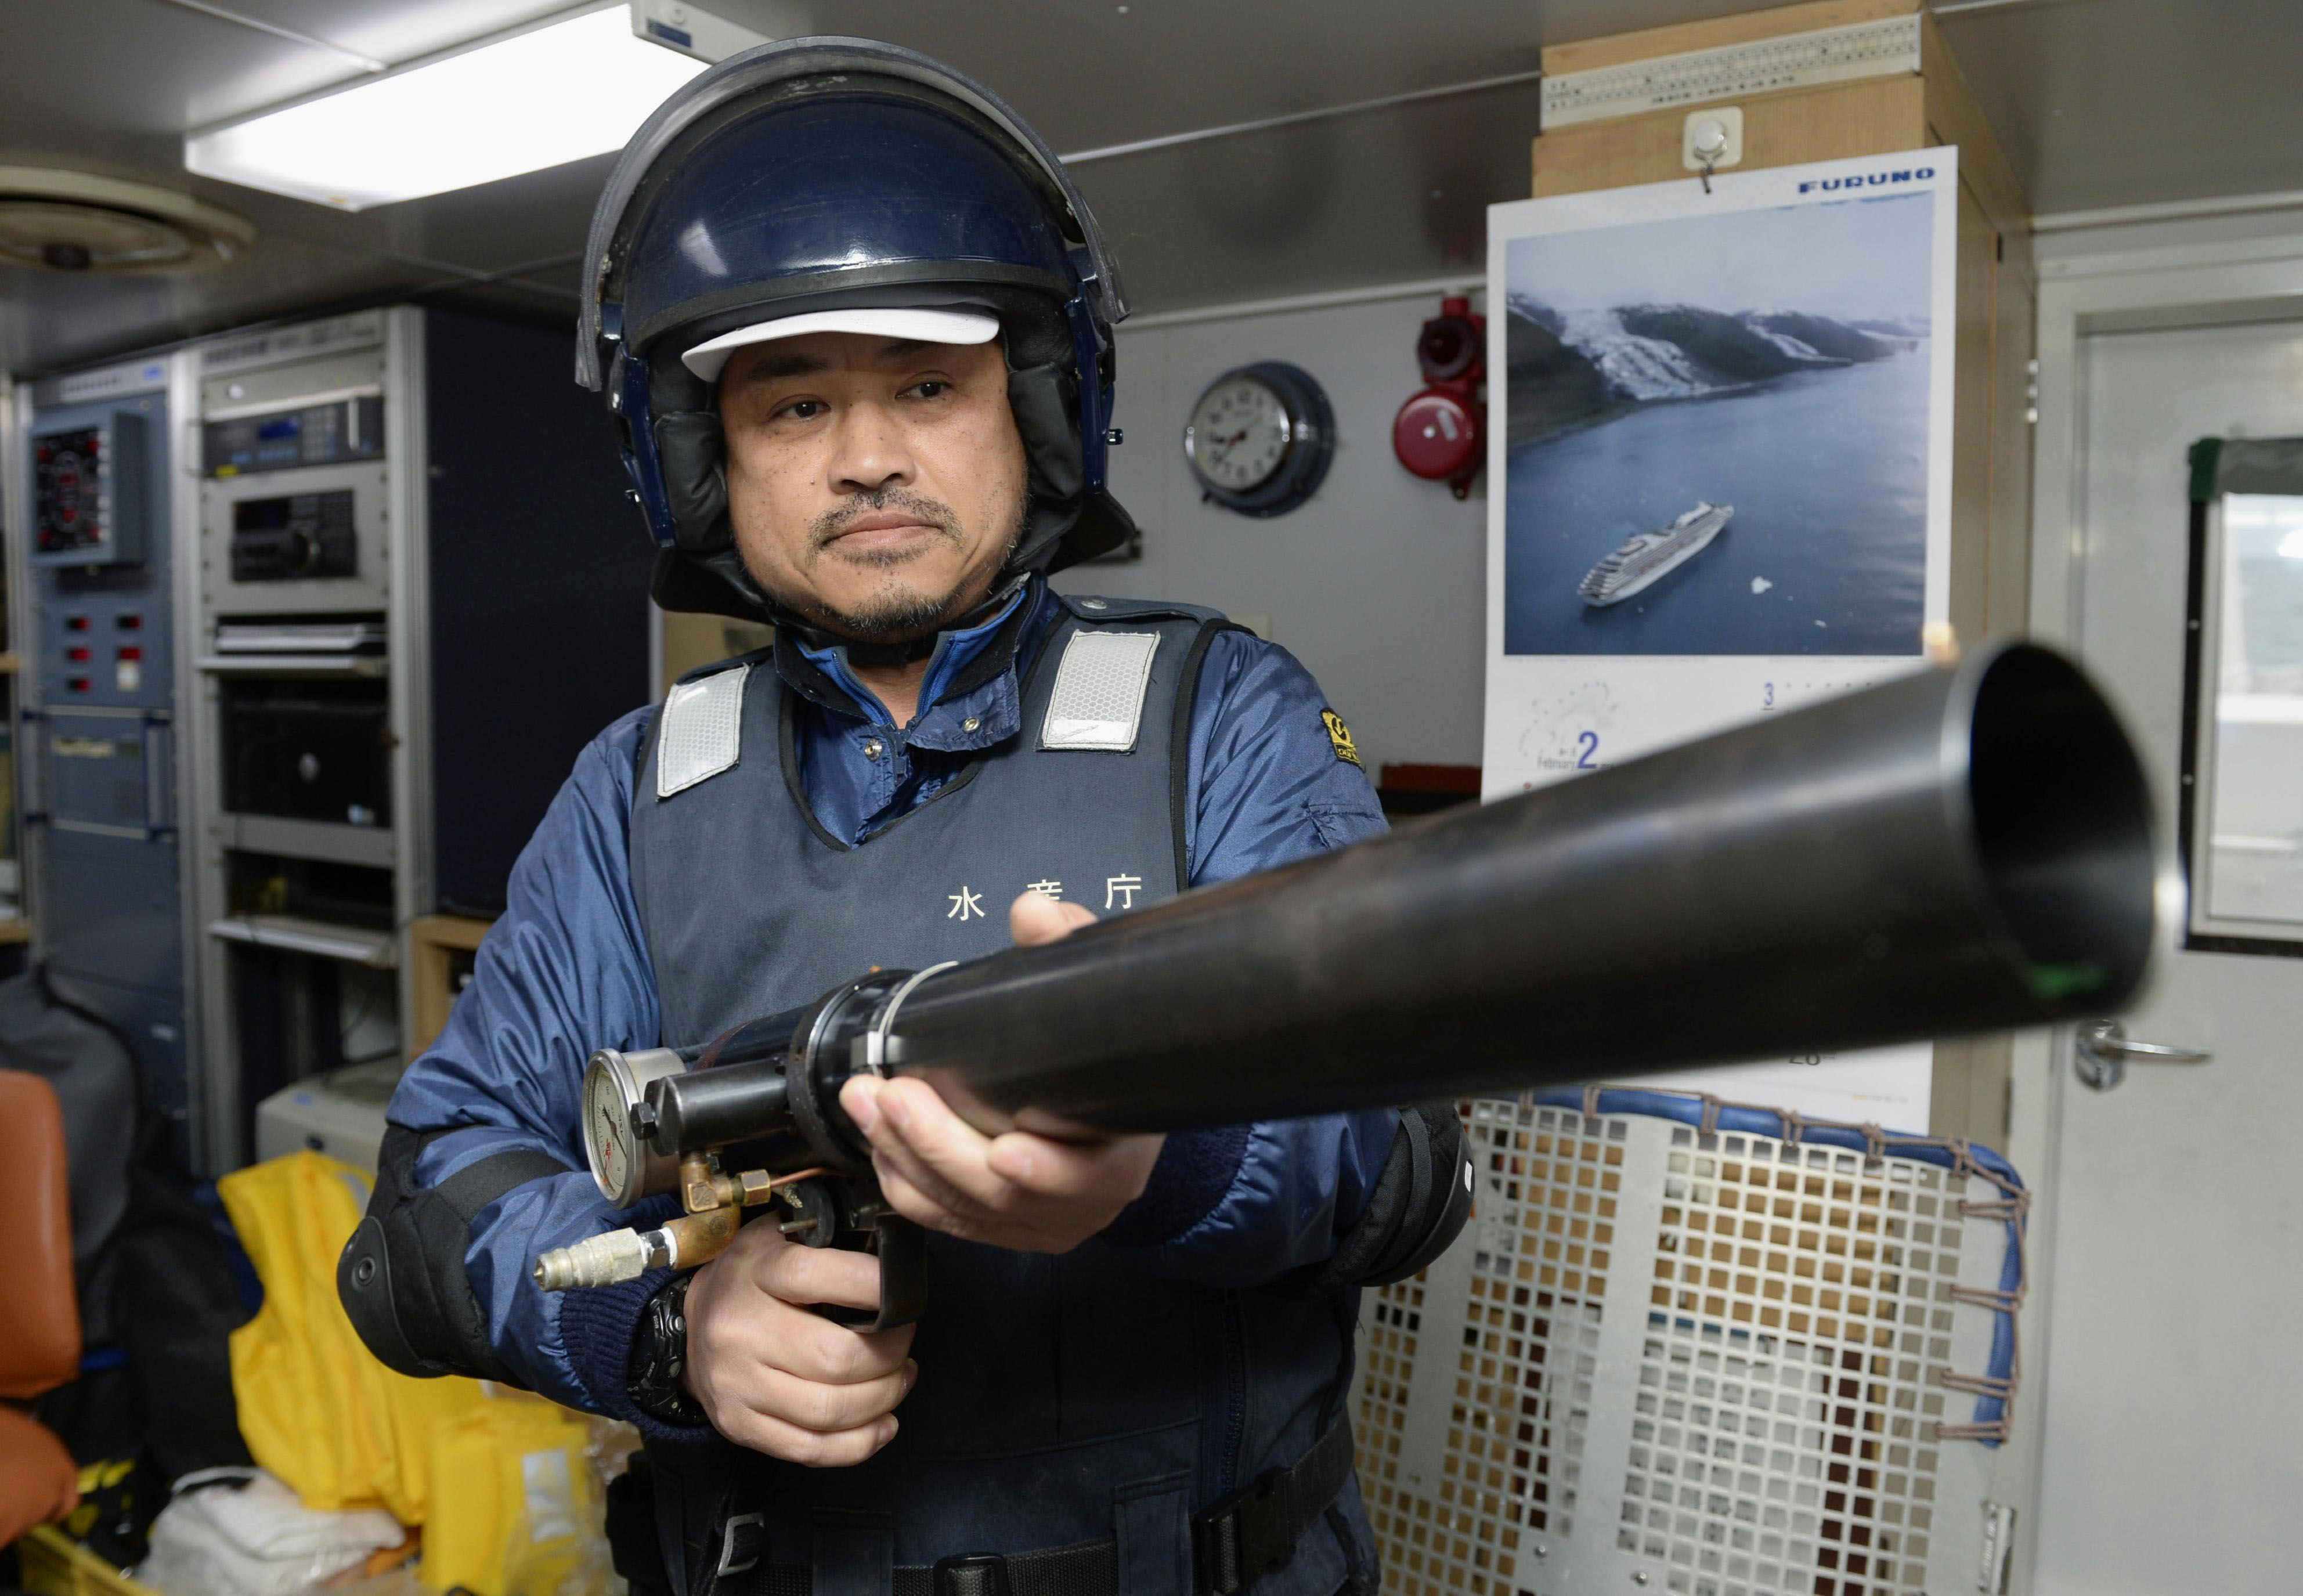 A member of the Fisheries Agency patrol boat Hakuo Maru holds a paint ball gun used to mark ships suspected of illegally fishing in Japanese waters in February while off the coast of Tsushima Island in Nagasaki Prefecture. | KYODO